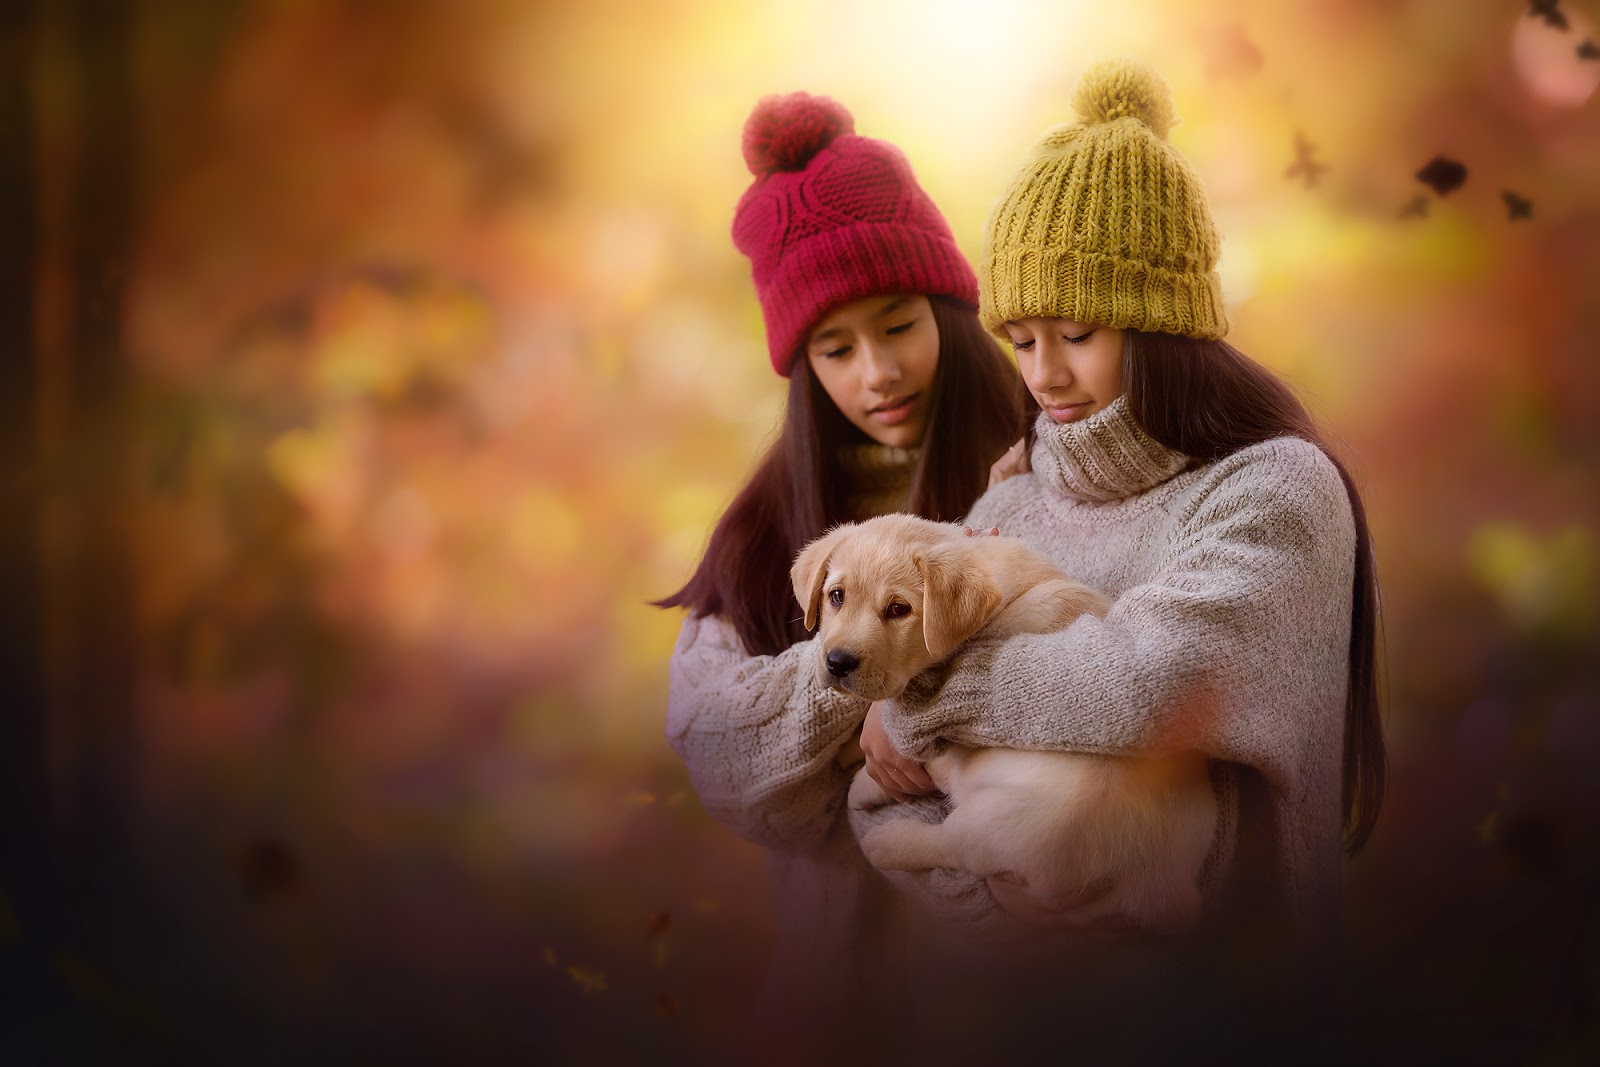 Canon 5d mark III portrait of two gorgeous asian girls holding a puppy in an enchanted autumn forest by Willie kers